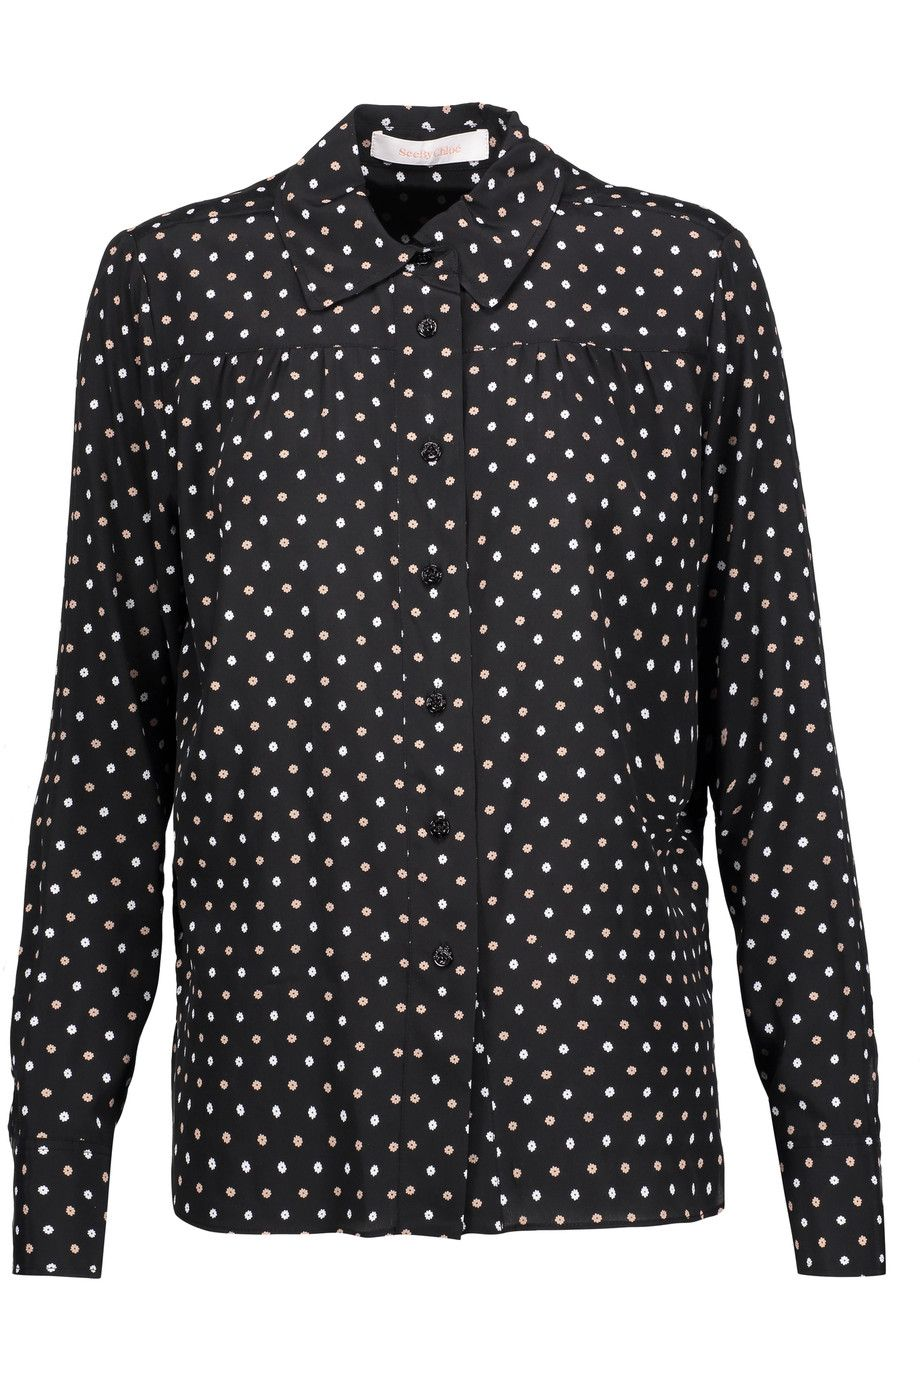 See By Chloé floral-print shirt Clearance Exclusive In China Cheap Online Under 70 Dollars tuSkOJ